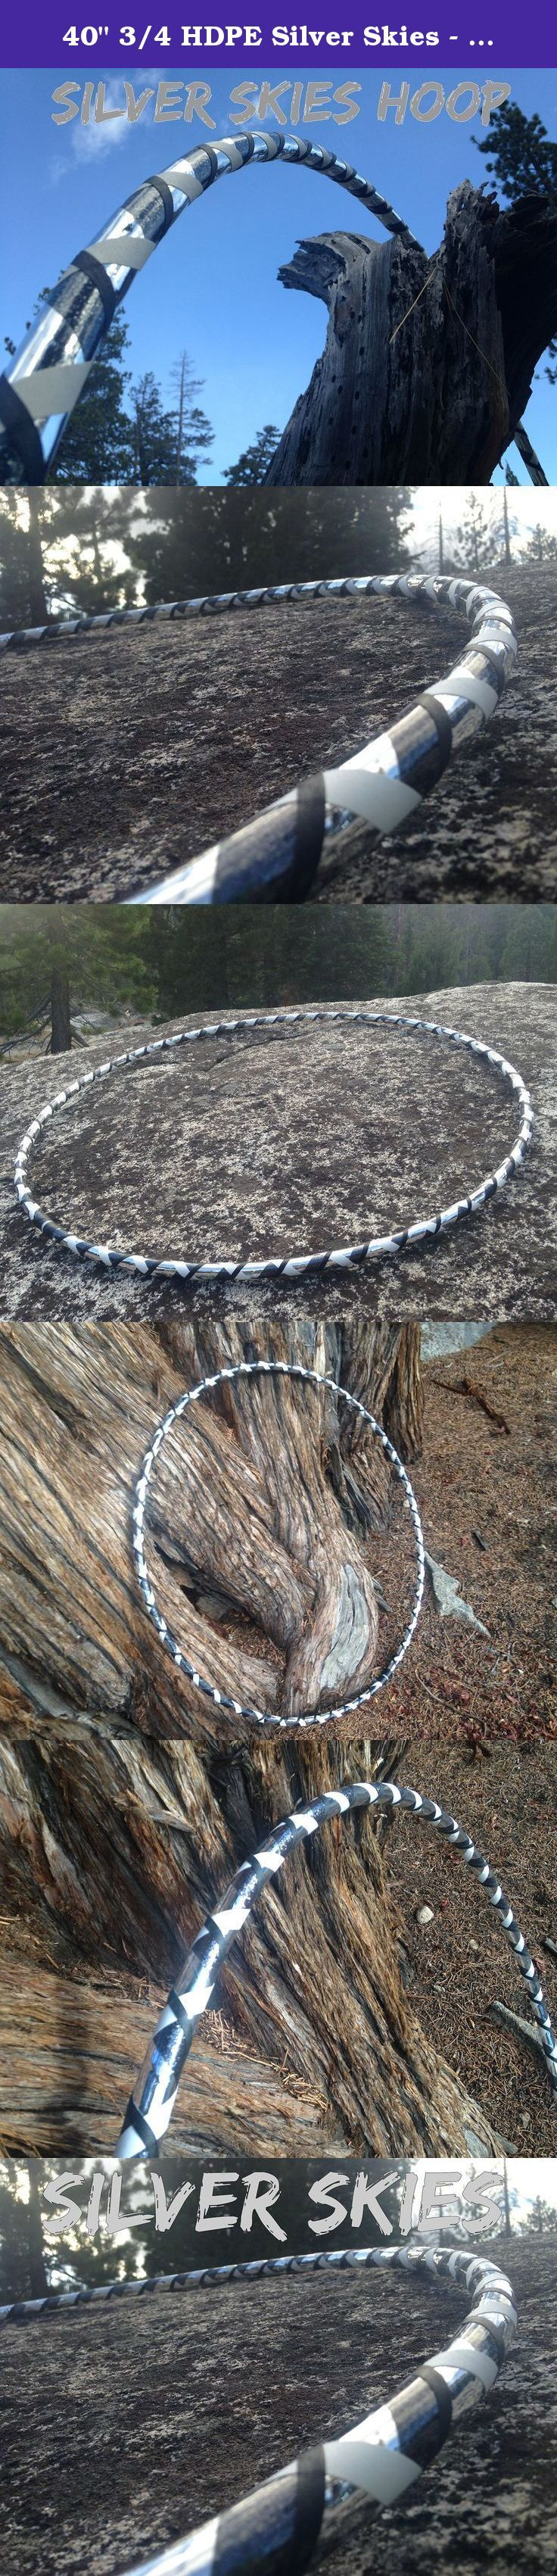 """40"""" 3/4 HDPE Silver Skies - Specialty Taped Hula Hoop. Introducing the Silver Skies Hoop by Colorado Hula Hoops! This Hoop Shines and Sparkles so beautifully outside in the sunshine. Made from 3/4"""" HDPE and completely covered in our Silver and Graphite Metallic tapes as well as a white and black gaffers tapes. Pick your size for the diameter of the hoop. If you would like a different material or size of hoop than what is offered here please just add this to your notes when purchasing or..."""